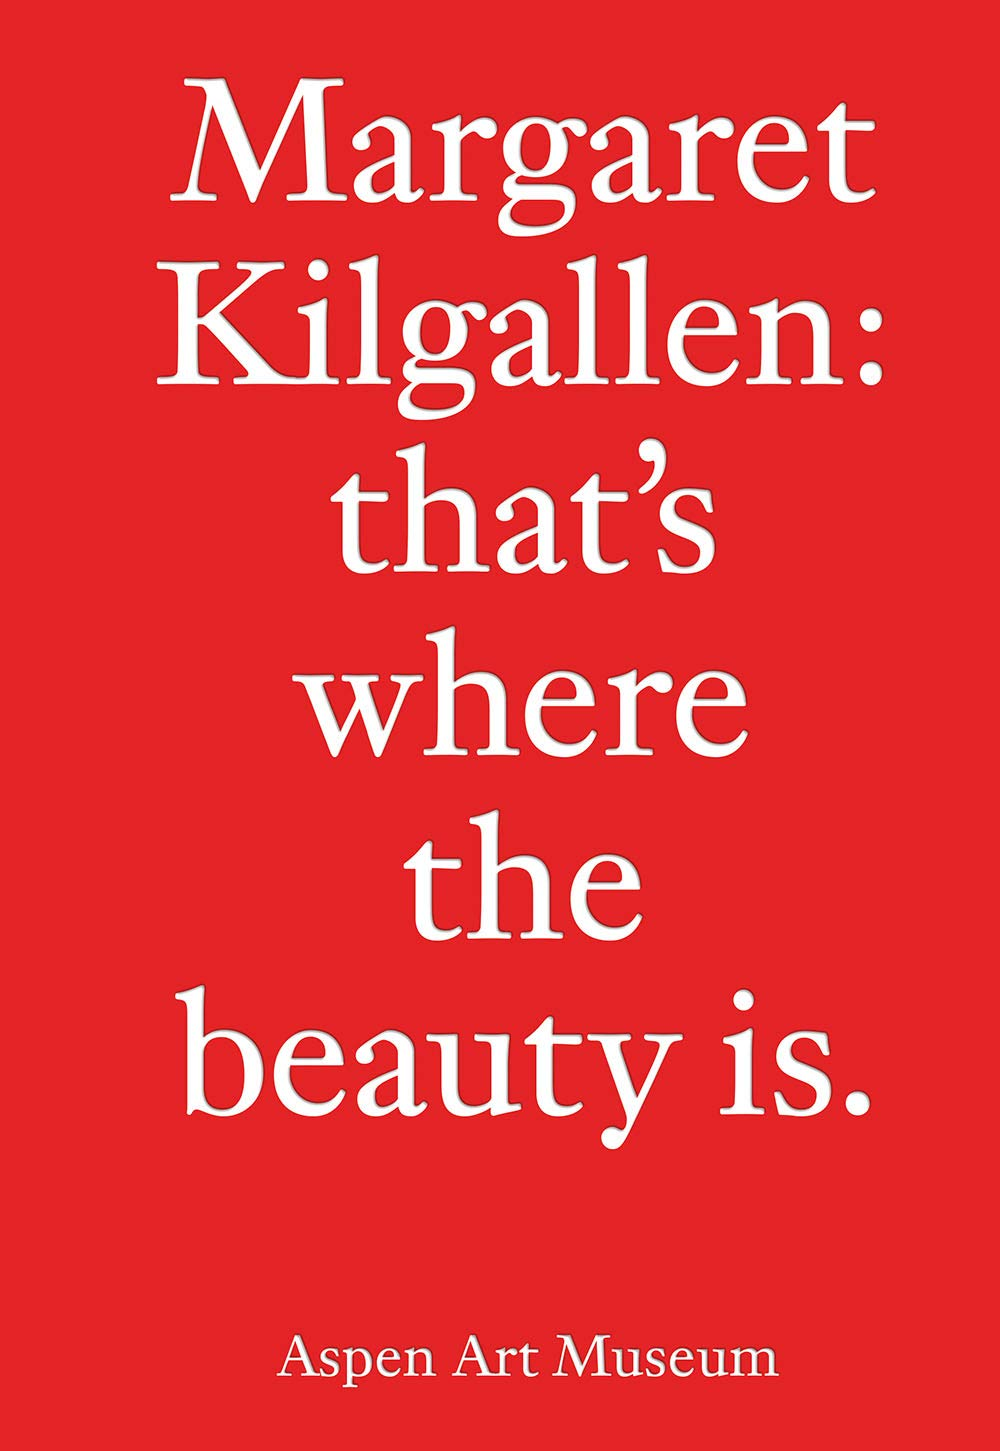 The cover of Margaret Kilgallen: that's where the beauty is.